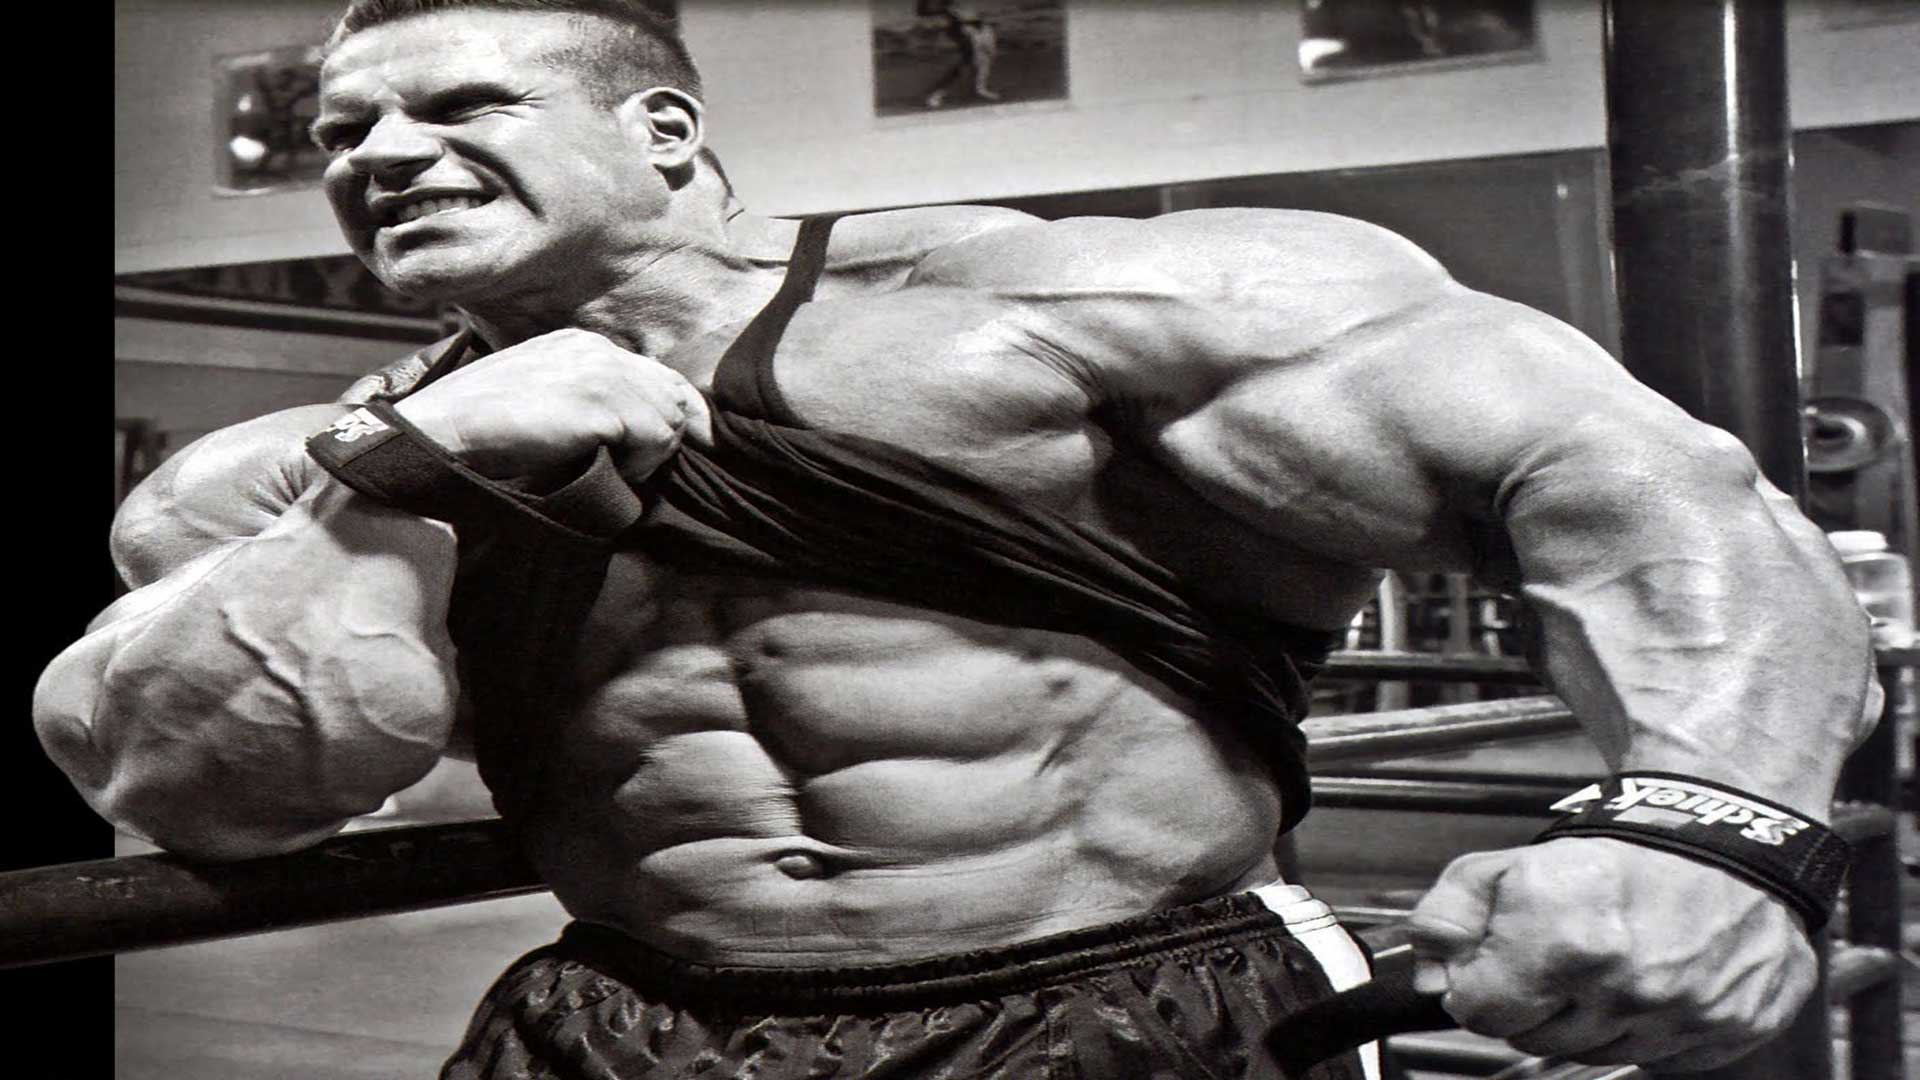 Jay Cutler Front Pose